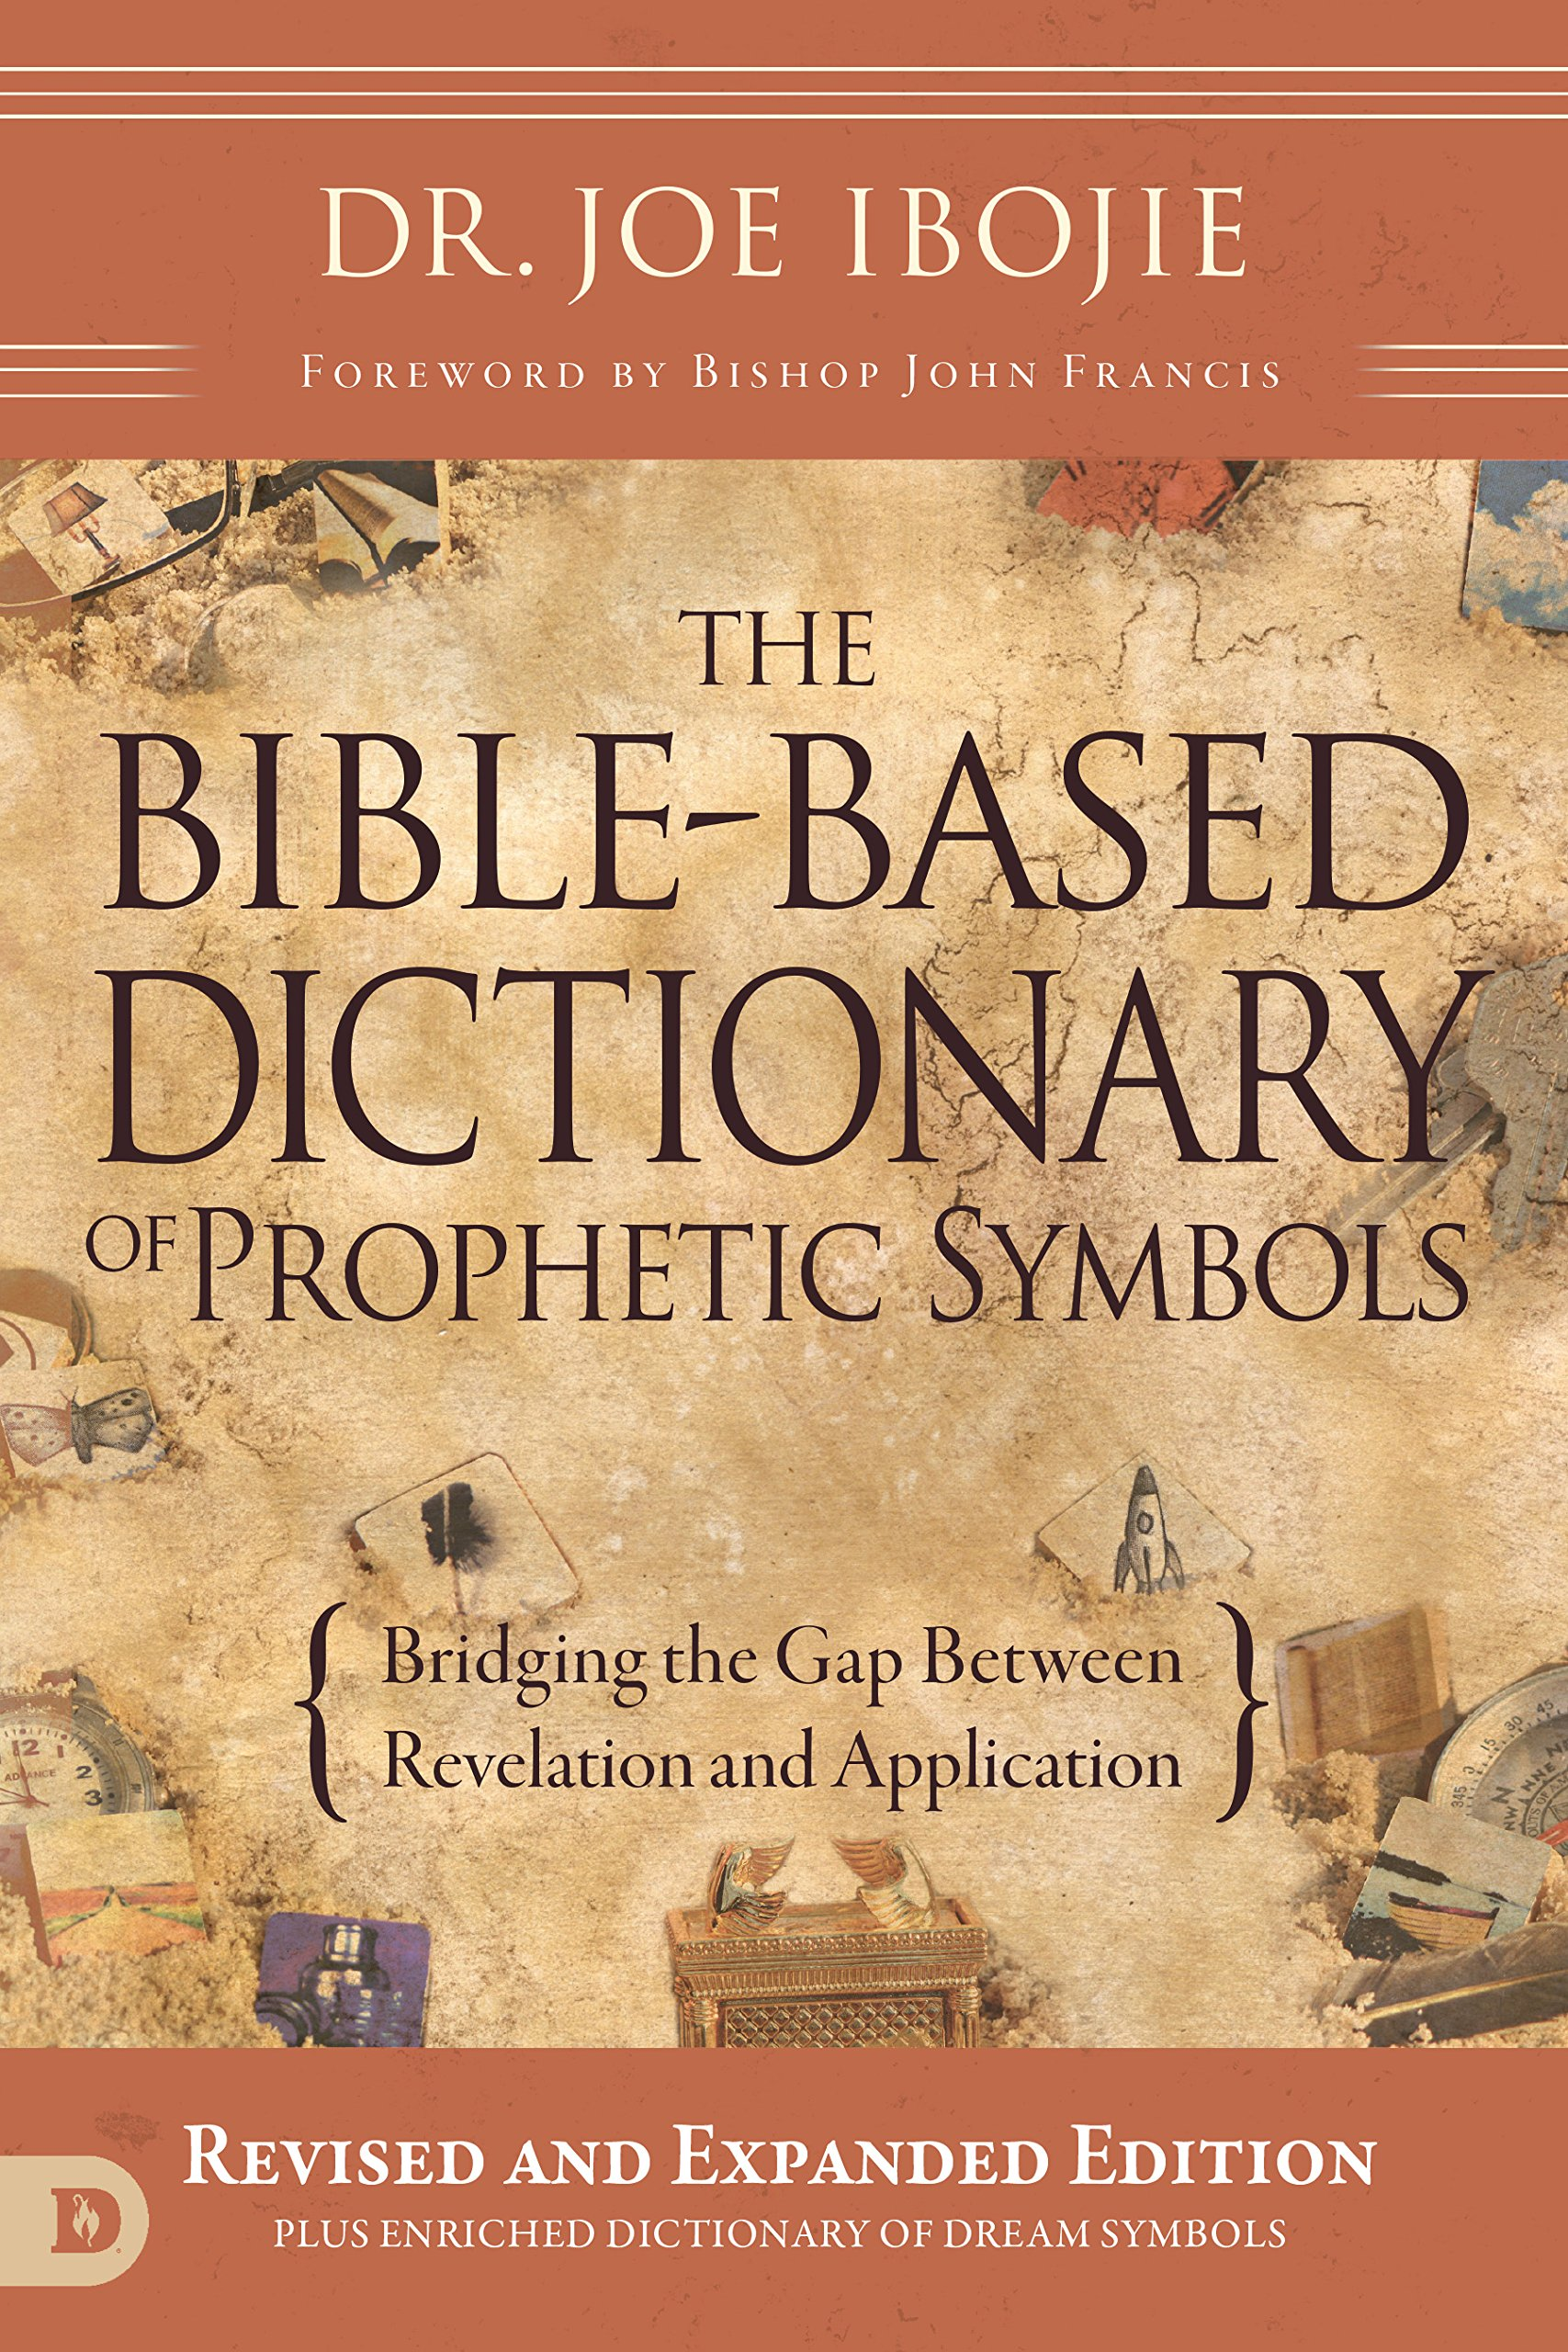 The bible based dictionary of prophetic symbols bridging the gap the bible based dictionary of prophetic symbols bridging the gap between revelation and application dr joe ibojie 9780768443394 amazon books biocorpaavc Gallery